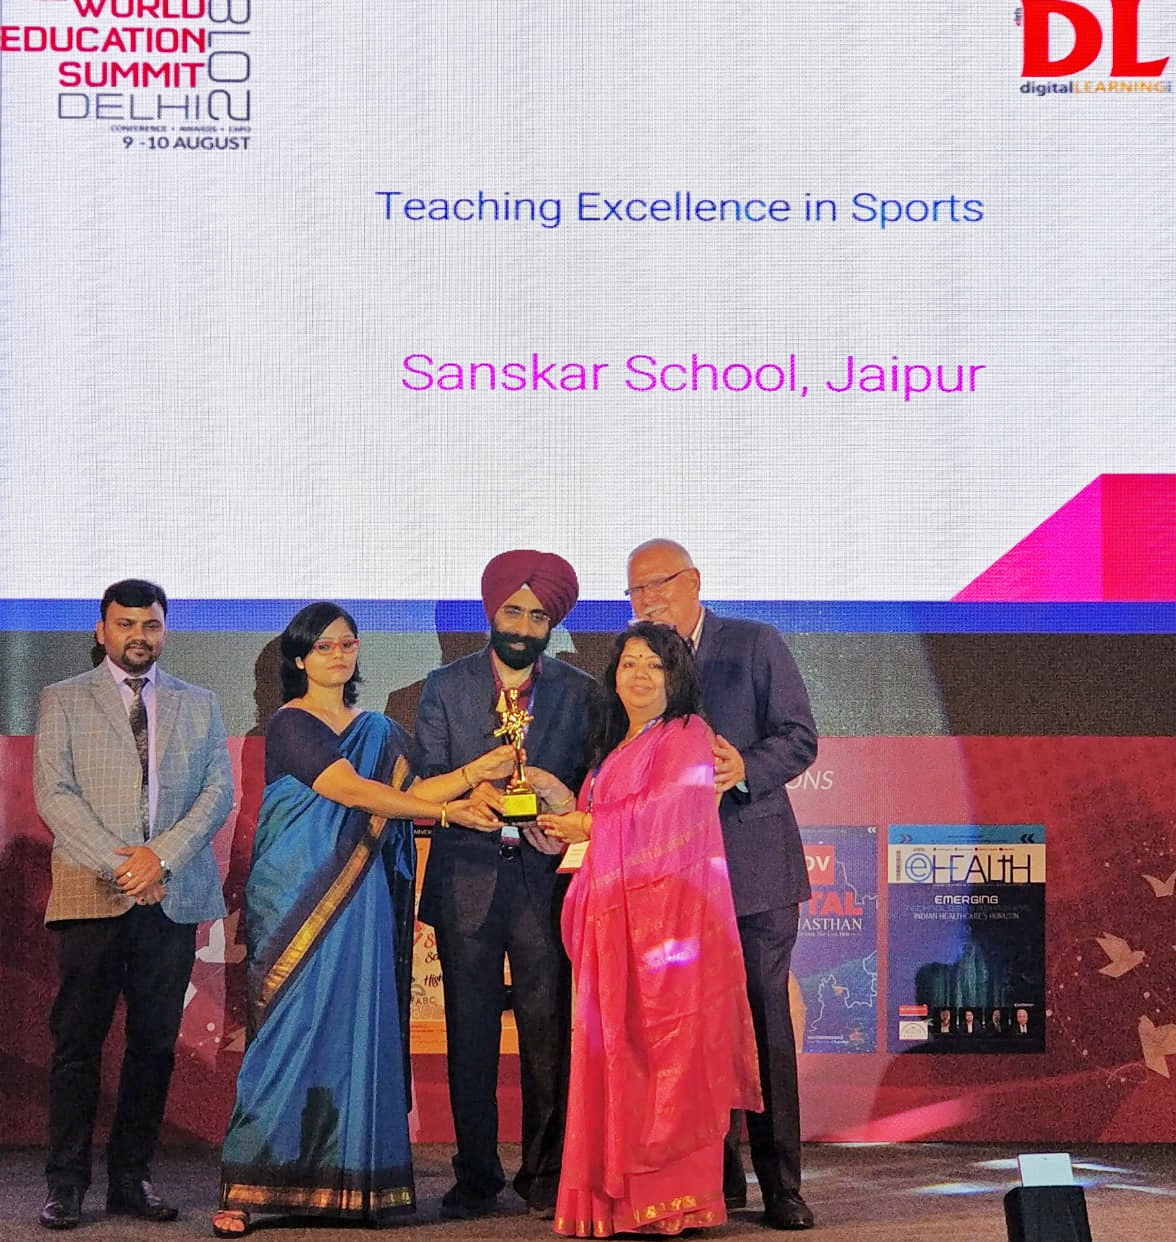 Sanskar School Principal felicitated with the 12th World Education Award 2018